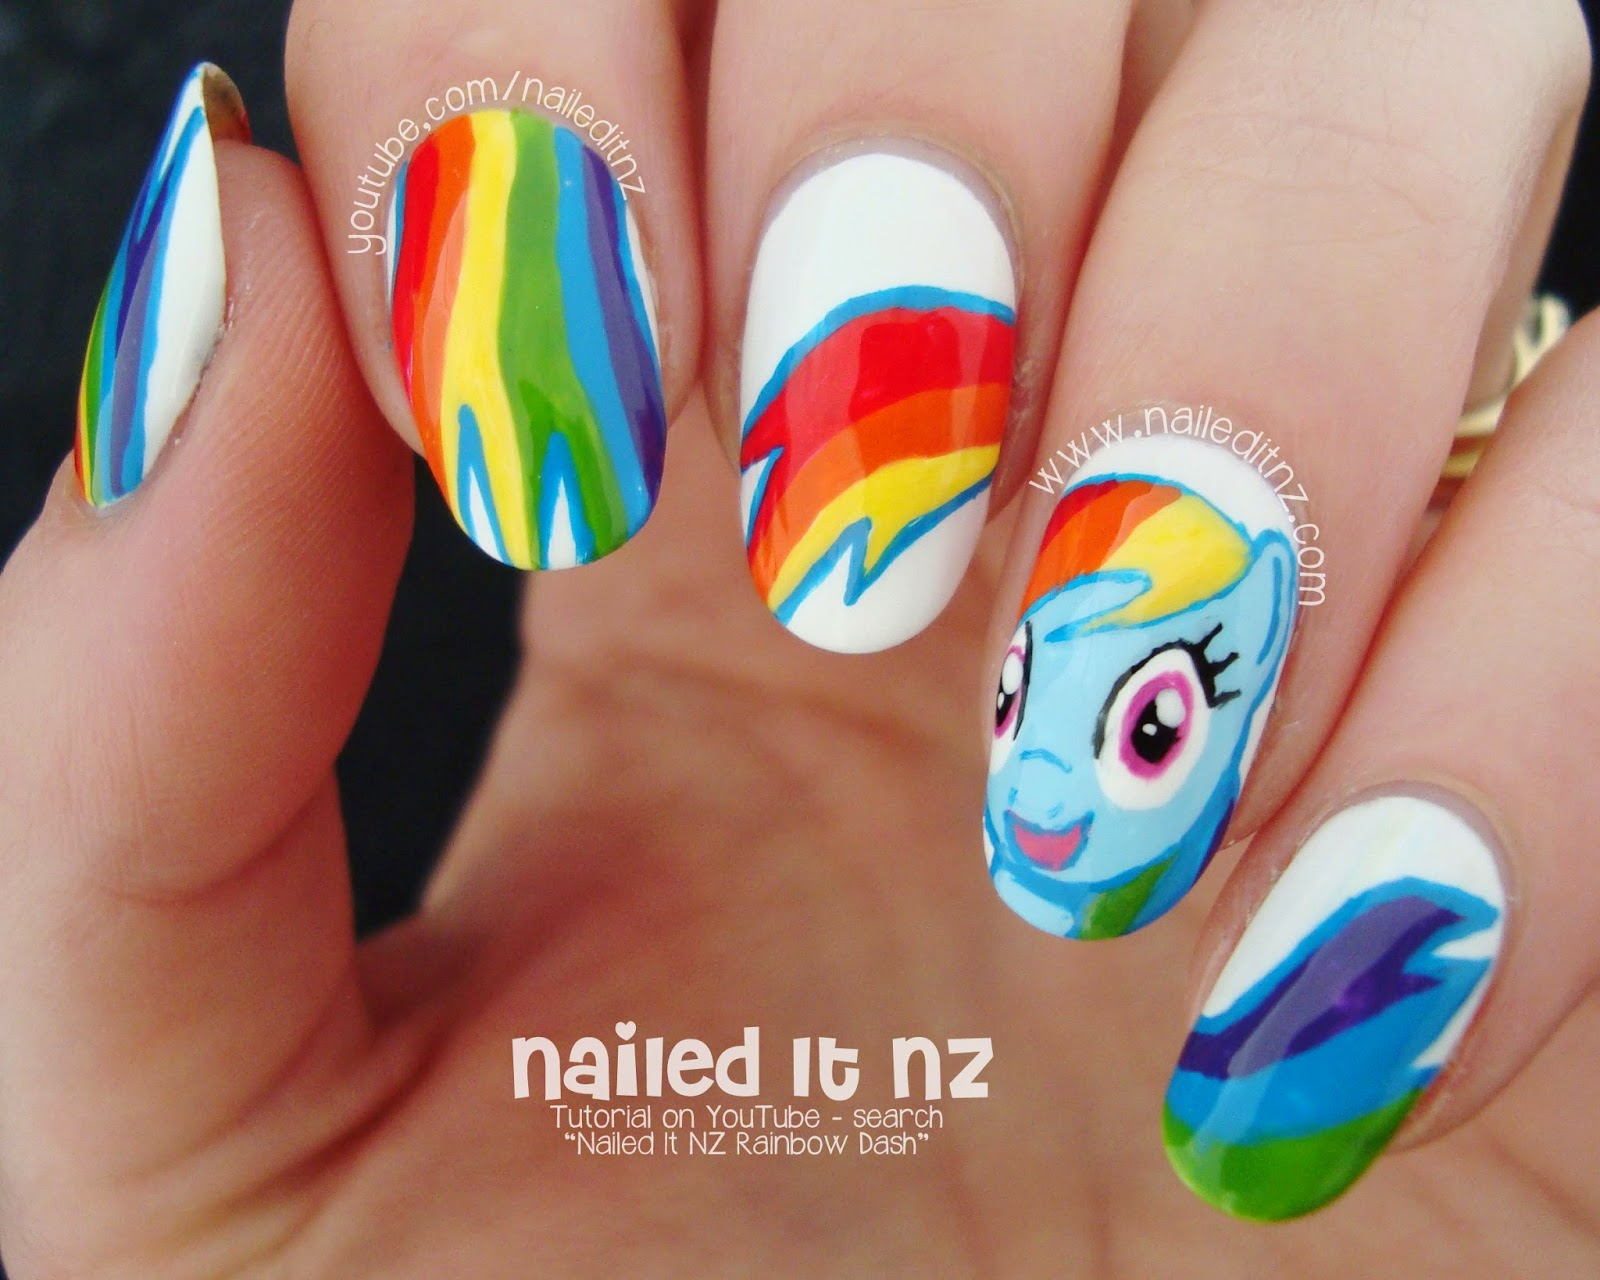 My little pony nail art rainbow dash tutorial im really happy with how the face turned out youll see in the video that it took a bit of work to get the details right but was worth it in the end prinsesfo Gallery